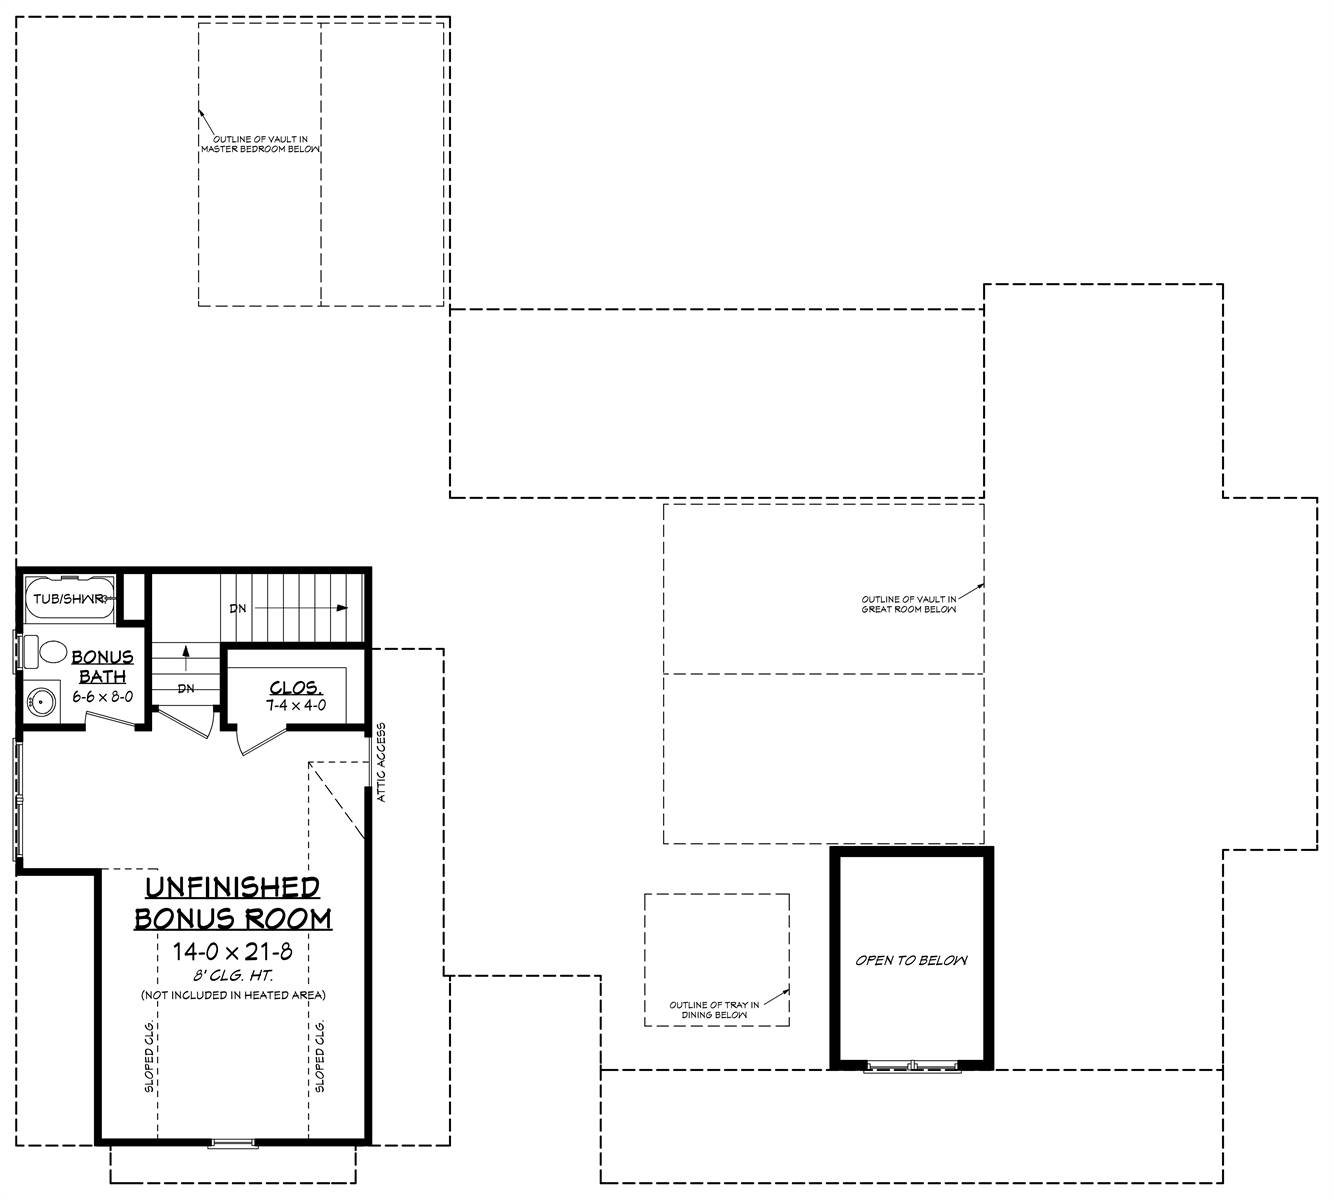 Bonus Floorplan by DFD House Plans